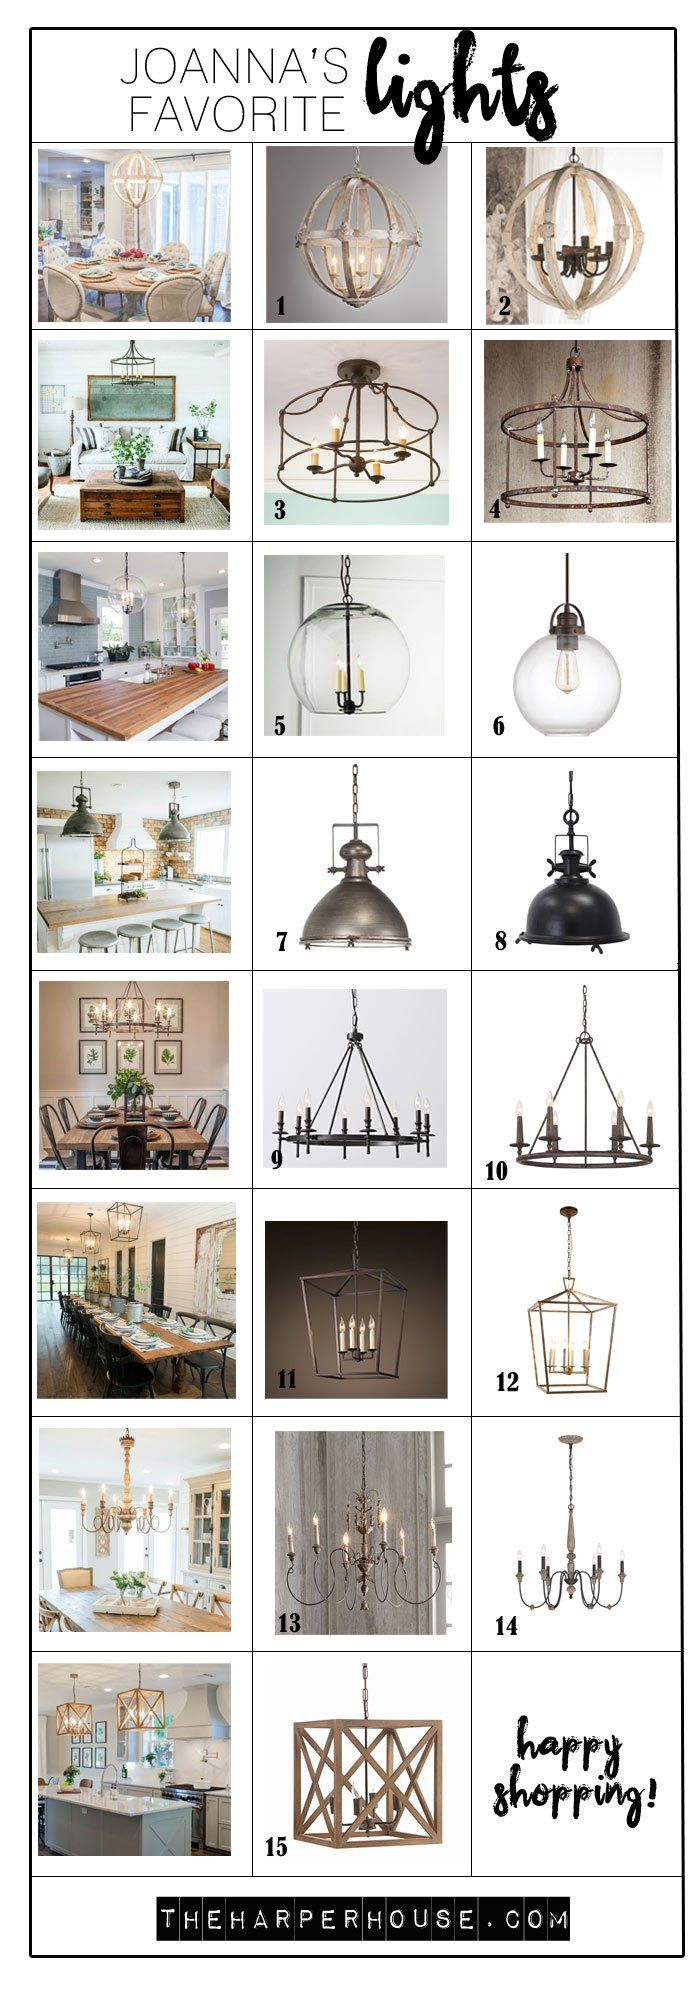 Window light fixtures magnolia market queen of everything - Check Out These Light Fixtures Used By Joanna Gaines On Fixer Upper Shopping Sources